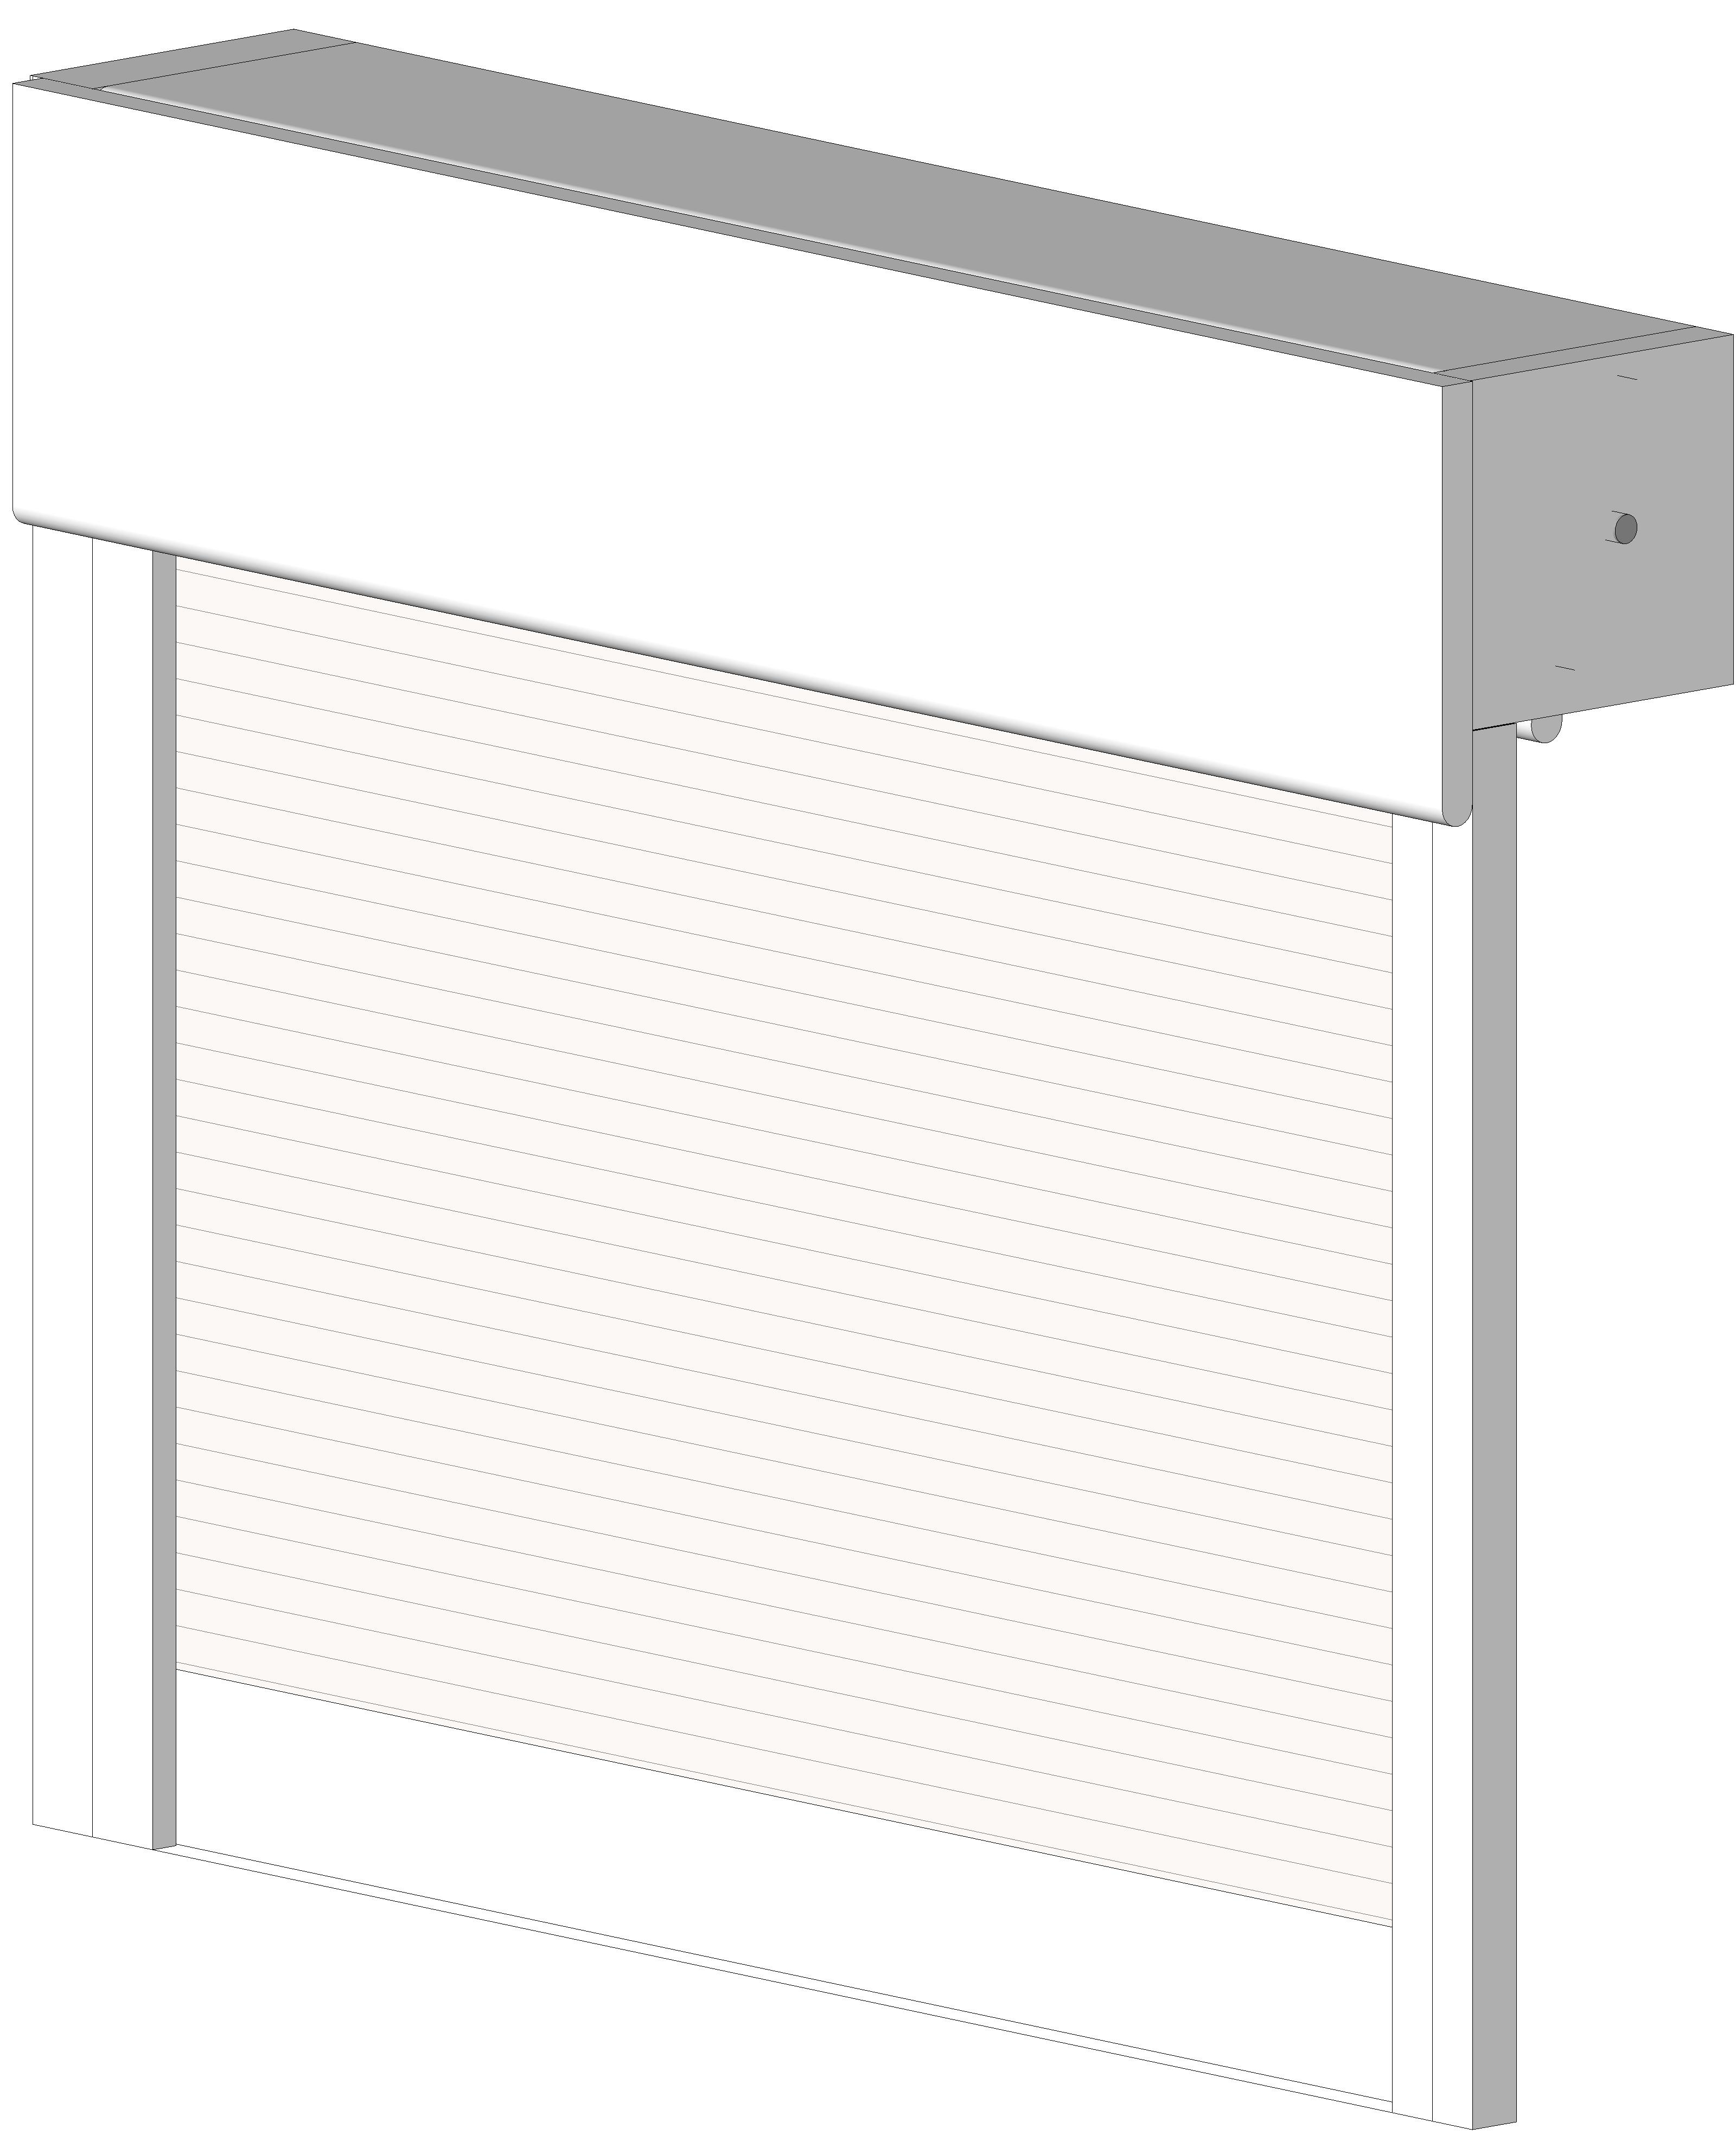 [ 08 33 00 ] Doors And Hardware: Rolling Doors: Fire Curtain